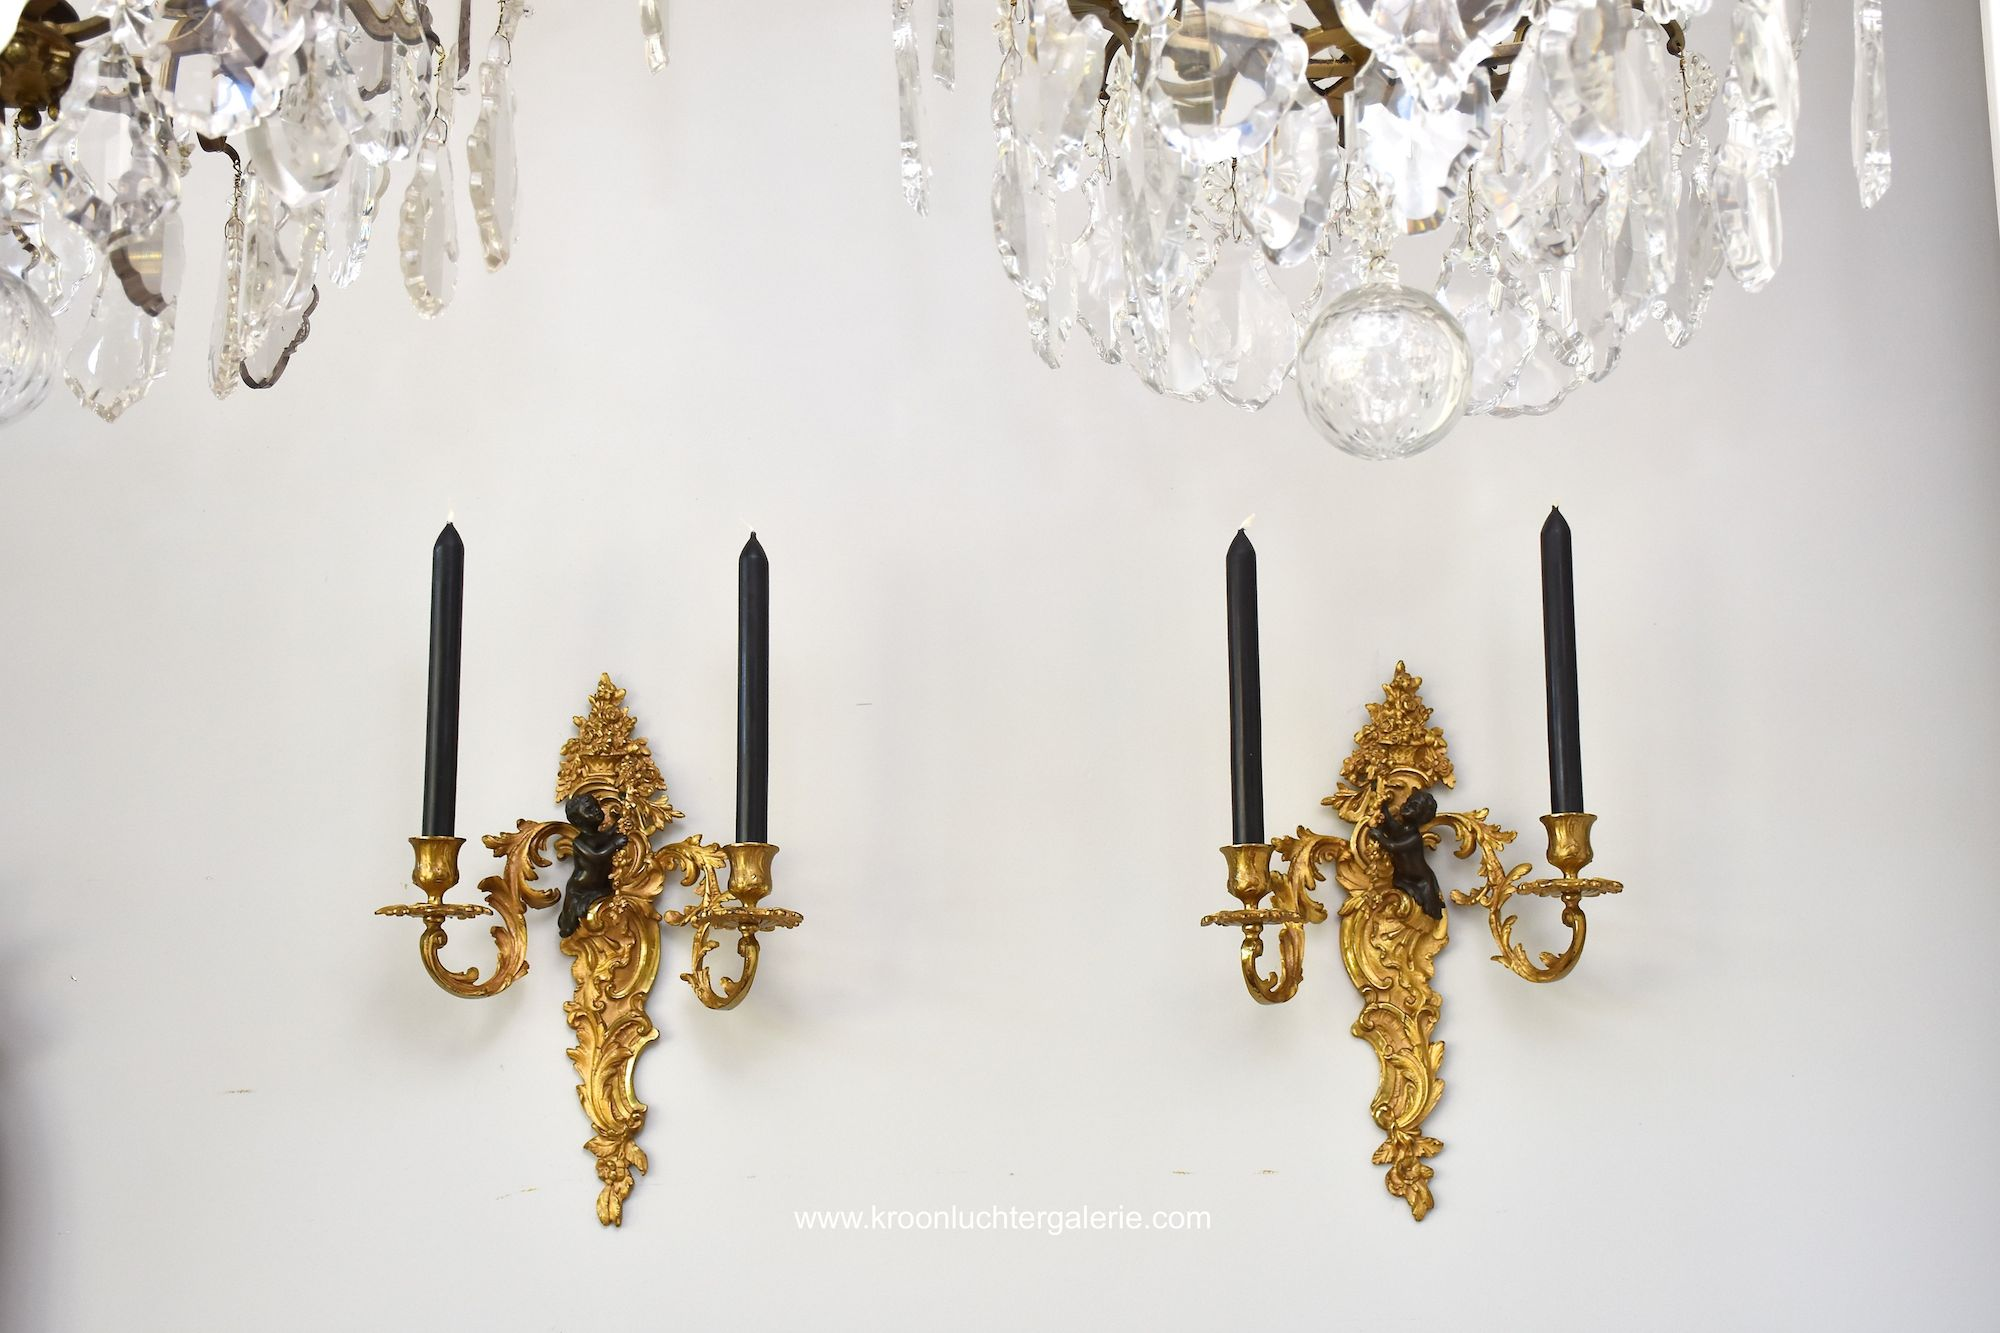 A pair of 19th century French wall lights